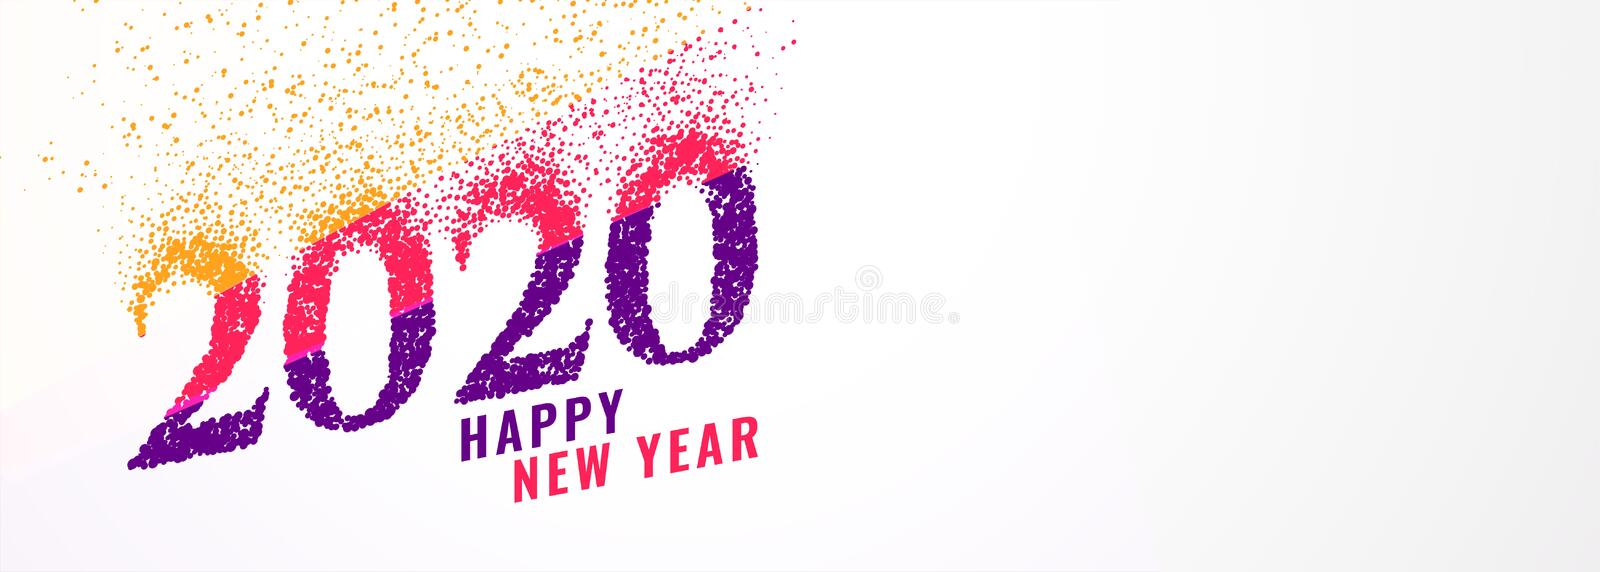 Abstract trendy 2020 new year banner with sparkles vector illustration